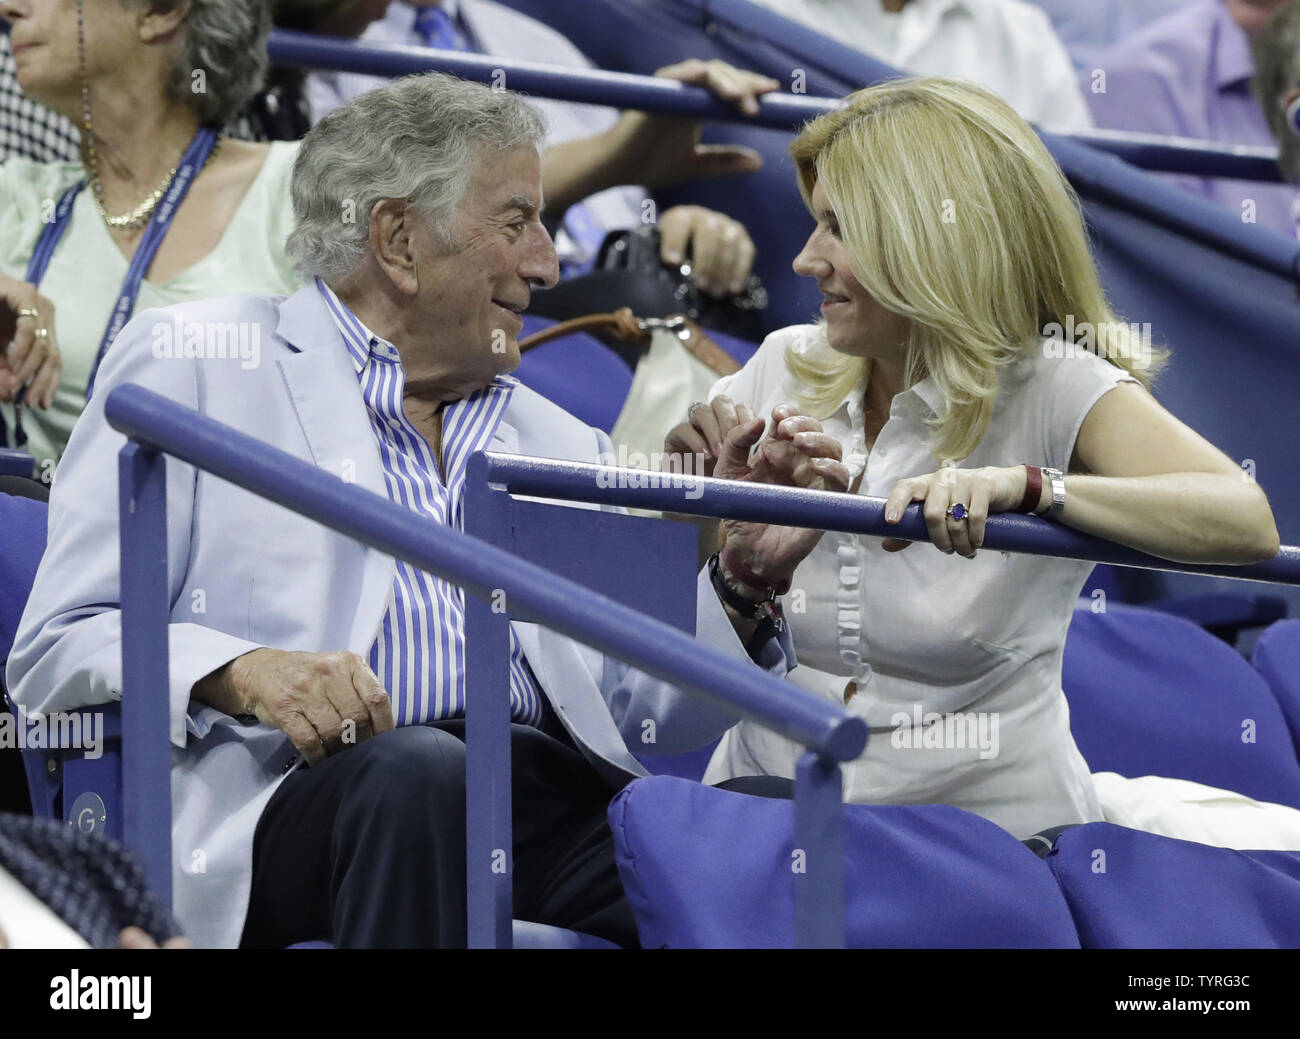 Tony Bennett and Susan Crow watch Simona Halep of Romania play Serena Williams of the United States in the quarterfinals in Arthur Ashe Stadium at the 2016 US Open Tennis Championships at the USTA Billie Jean King National Tennis Center in New York City on September 7, 2016.     Photo by John Angelillo/UPI - Stock Image